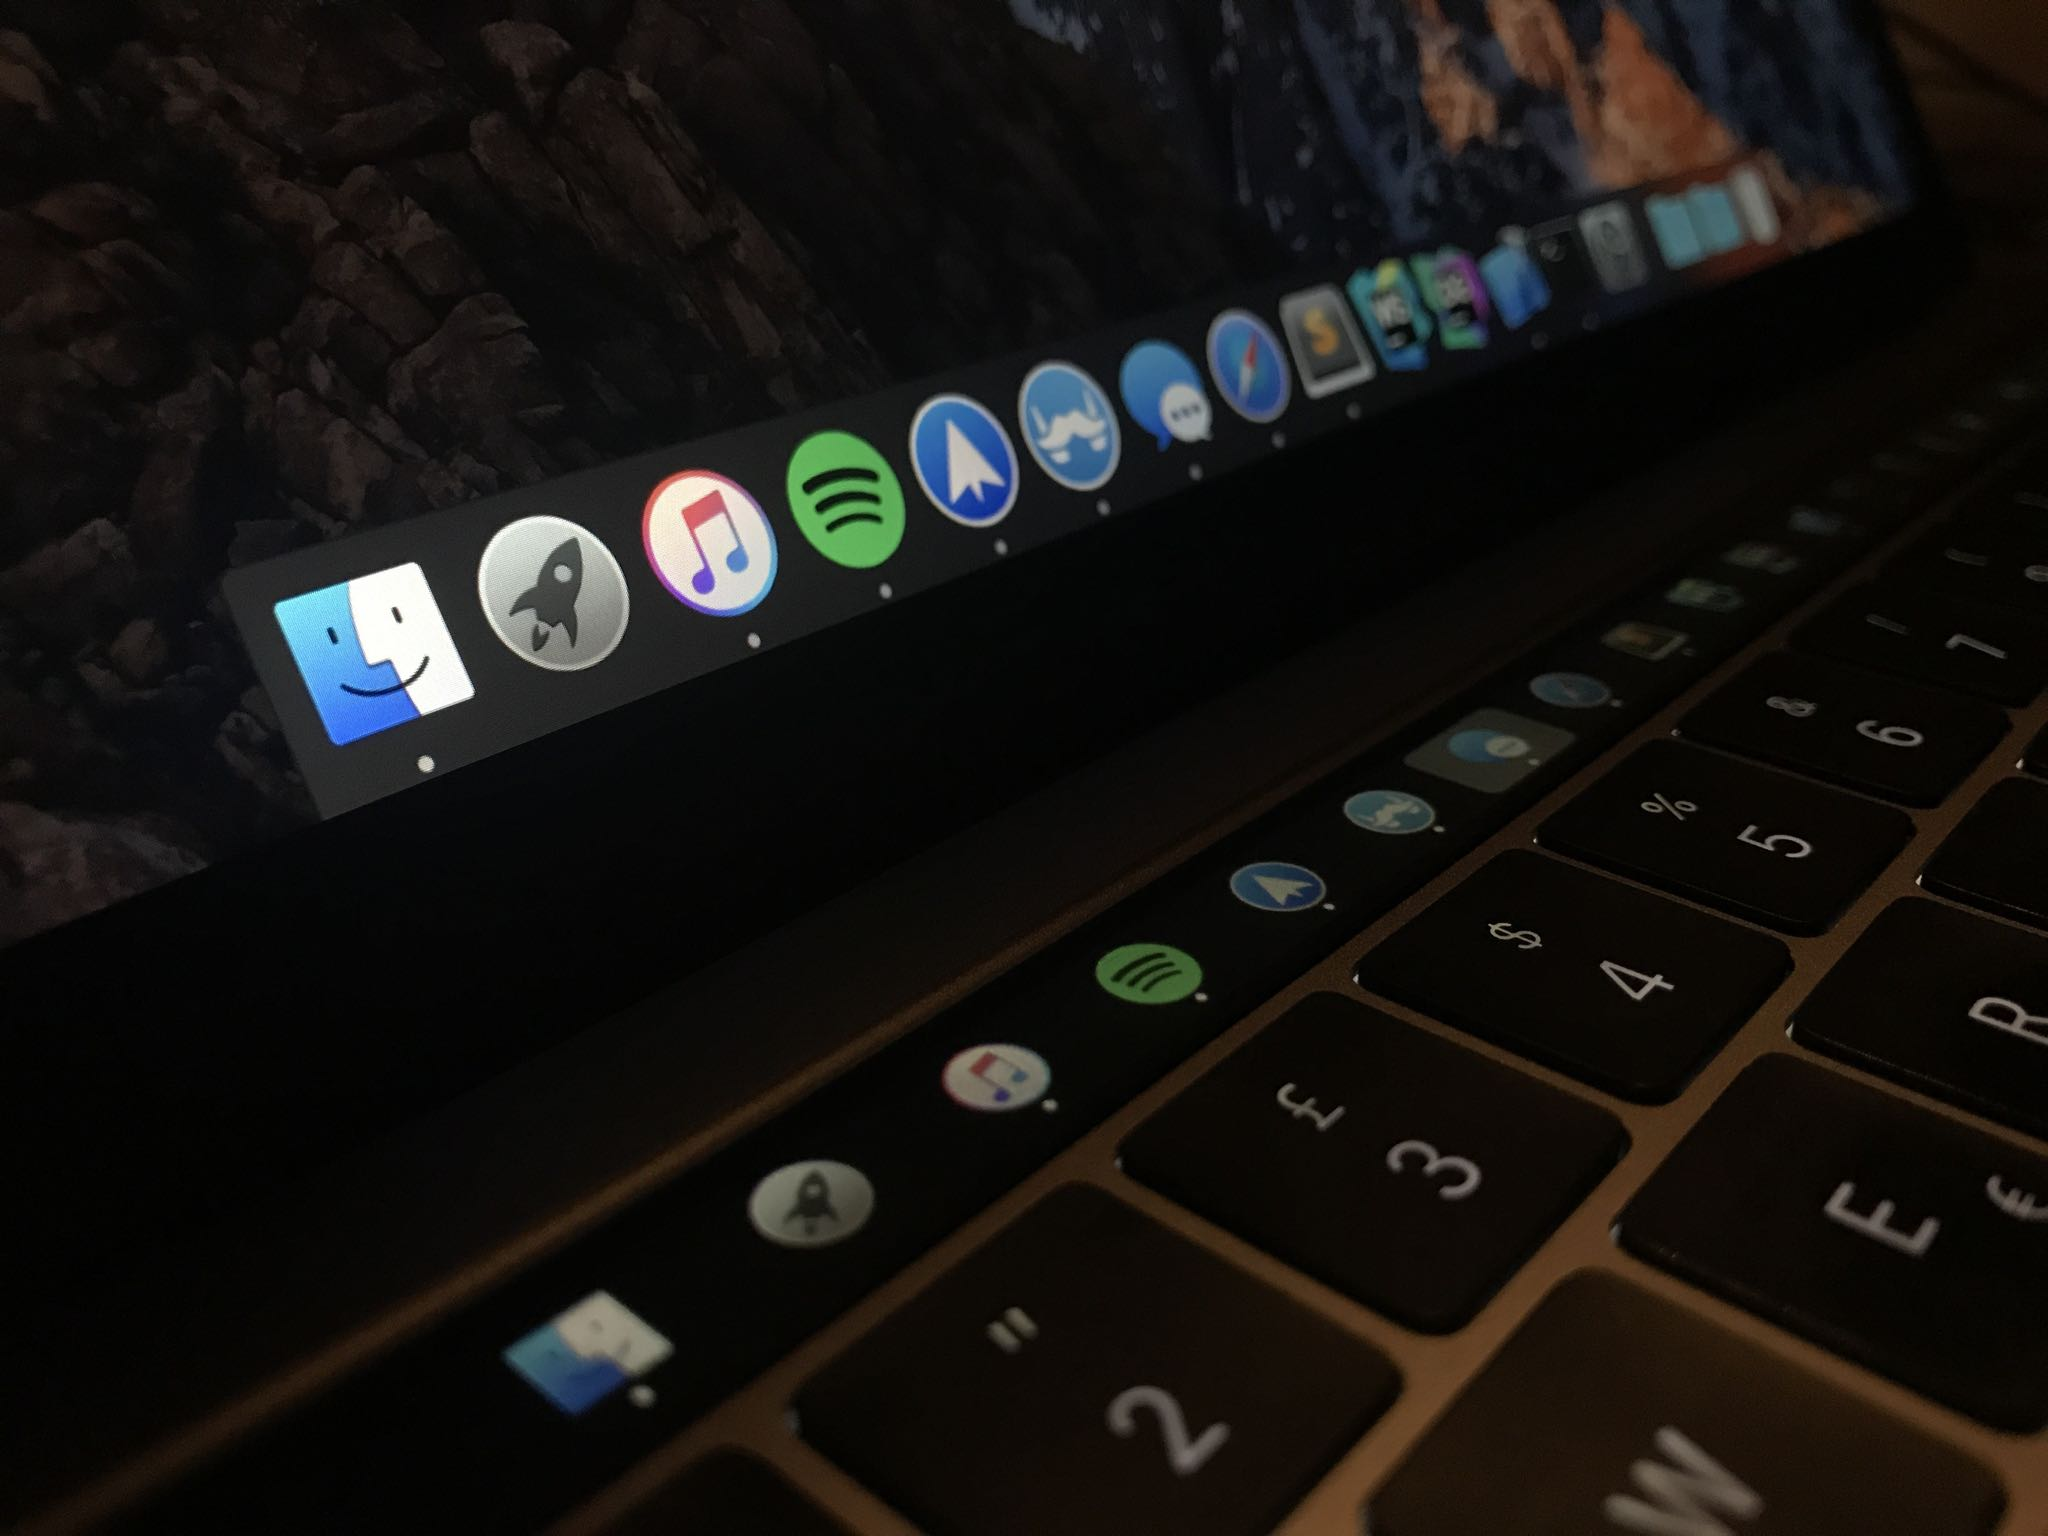 Pock displays the Dock in your Touch Bar